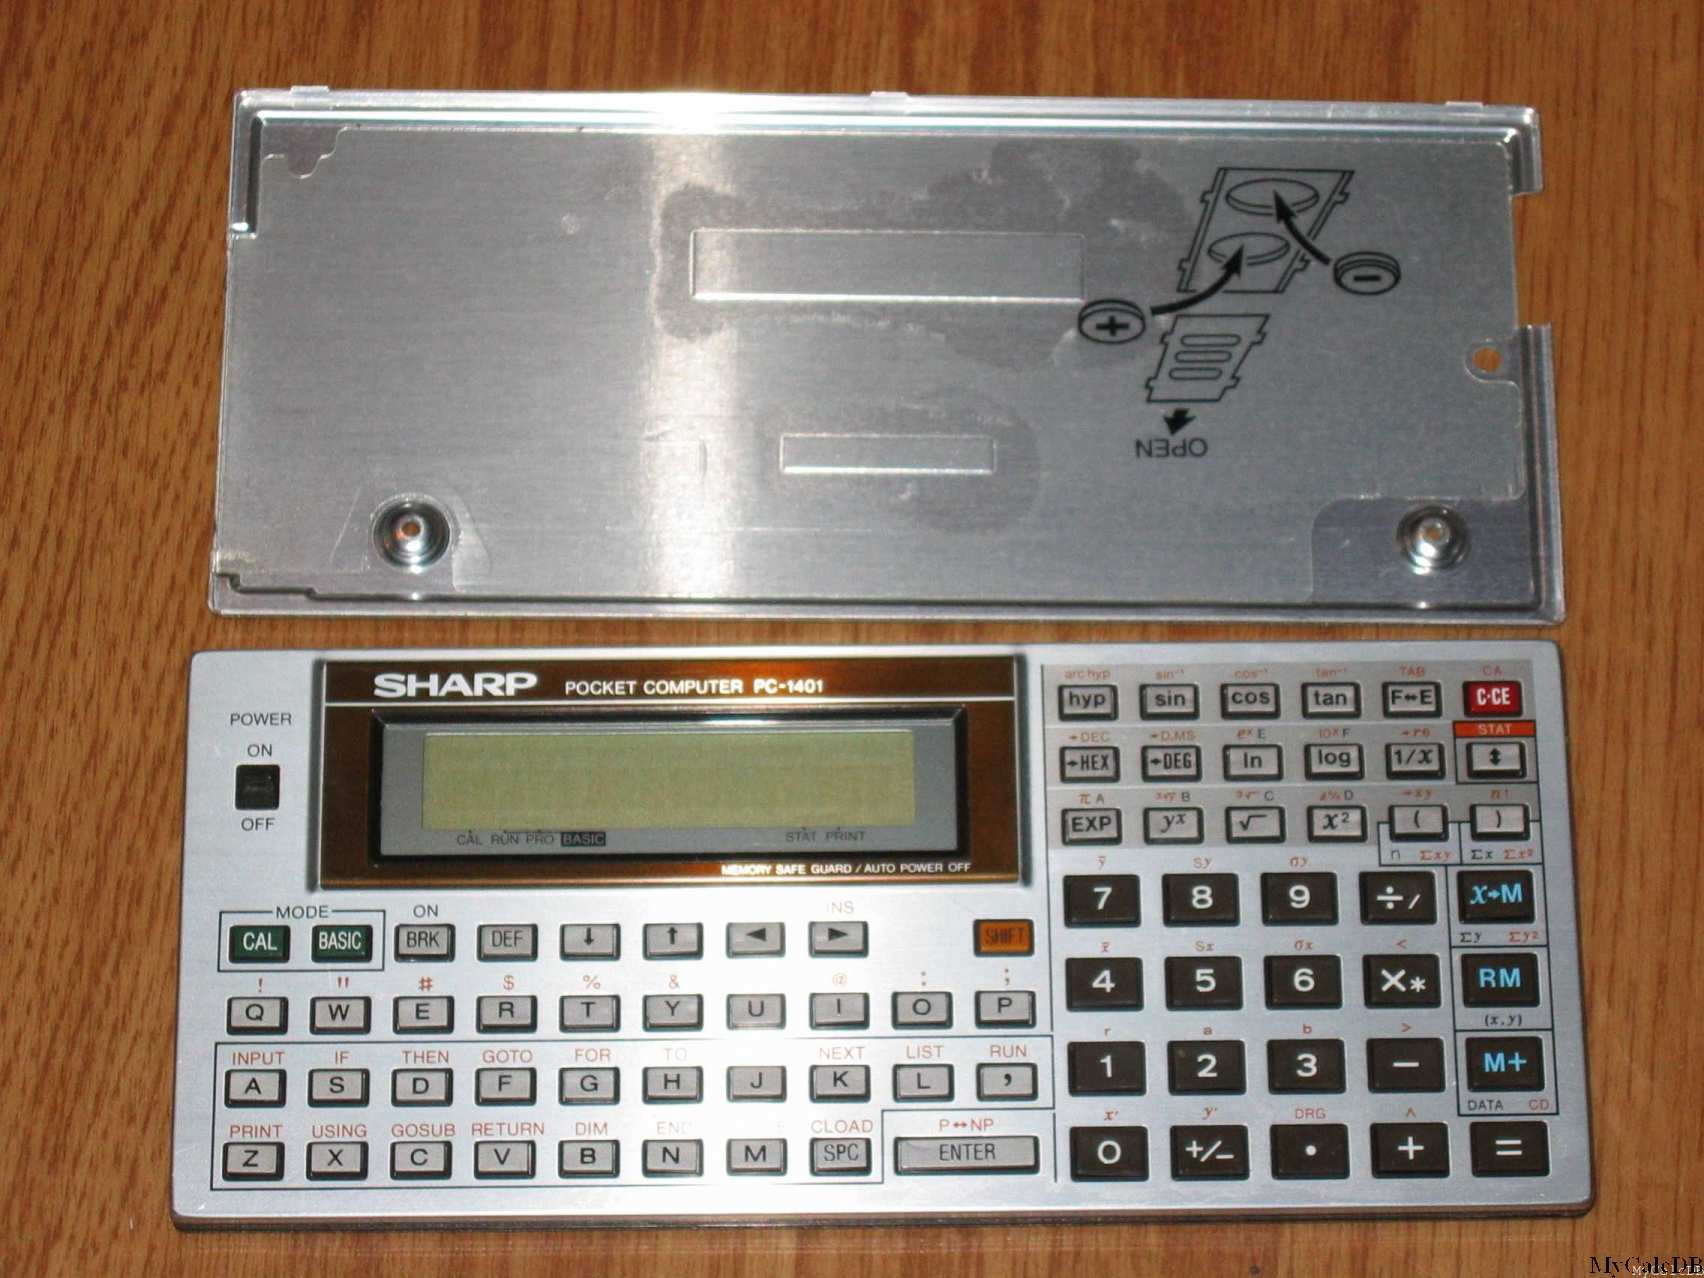 Sharp PC-1401